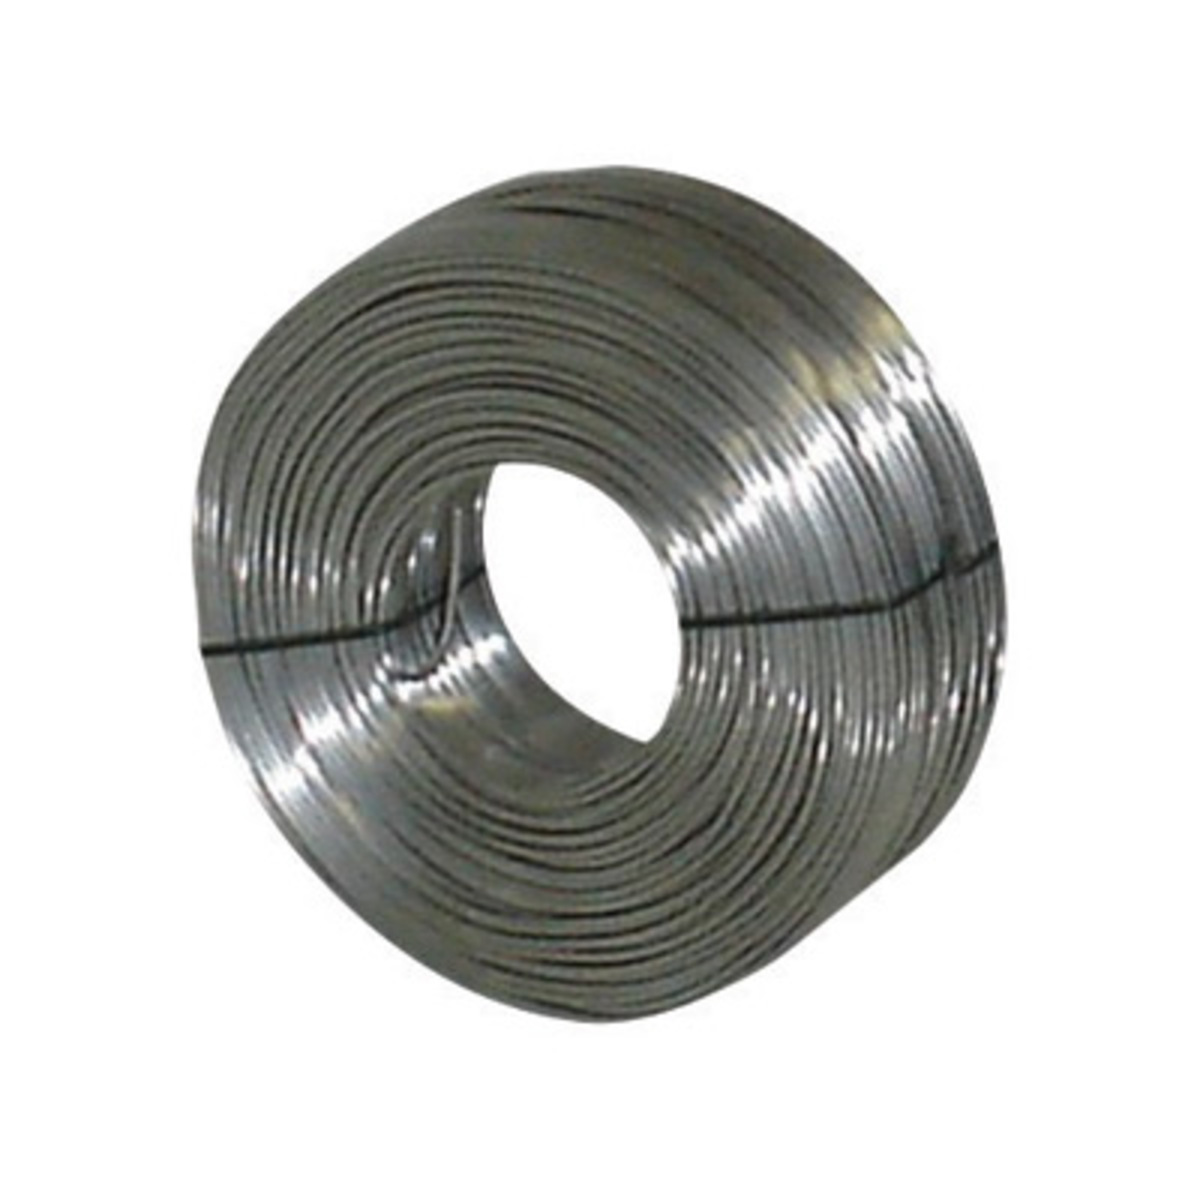 16 Gauge Tie Wire : Airgas i ideal reel gauge black annealed tie